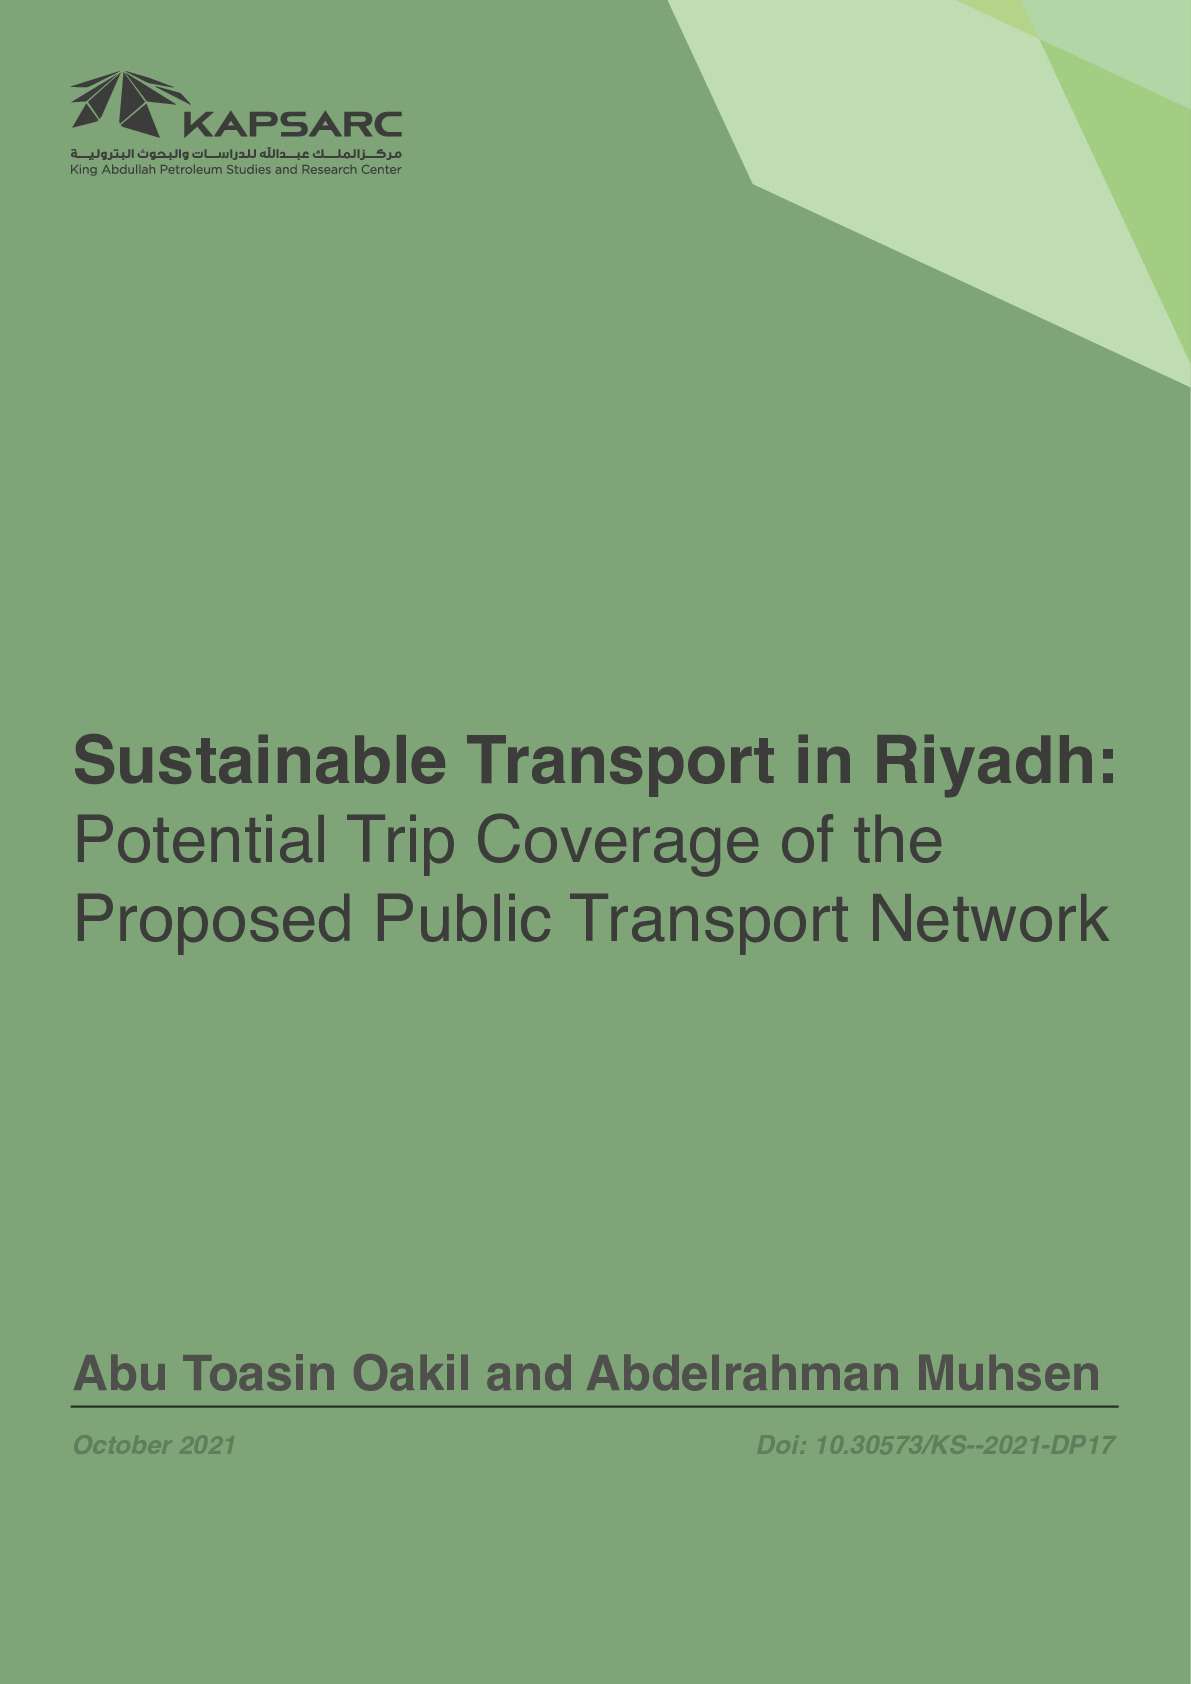 Sustainable Transport in Riyadh: Potential Trip Coverage of the Proposed Public Transport Network